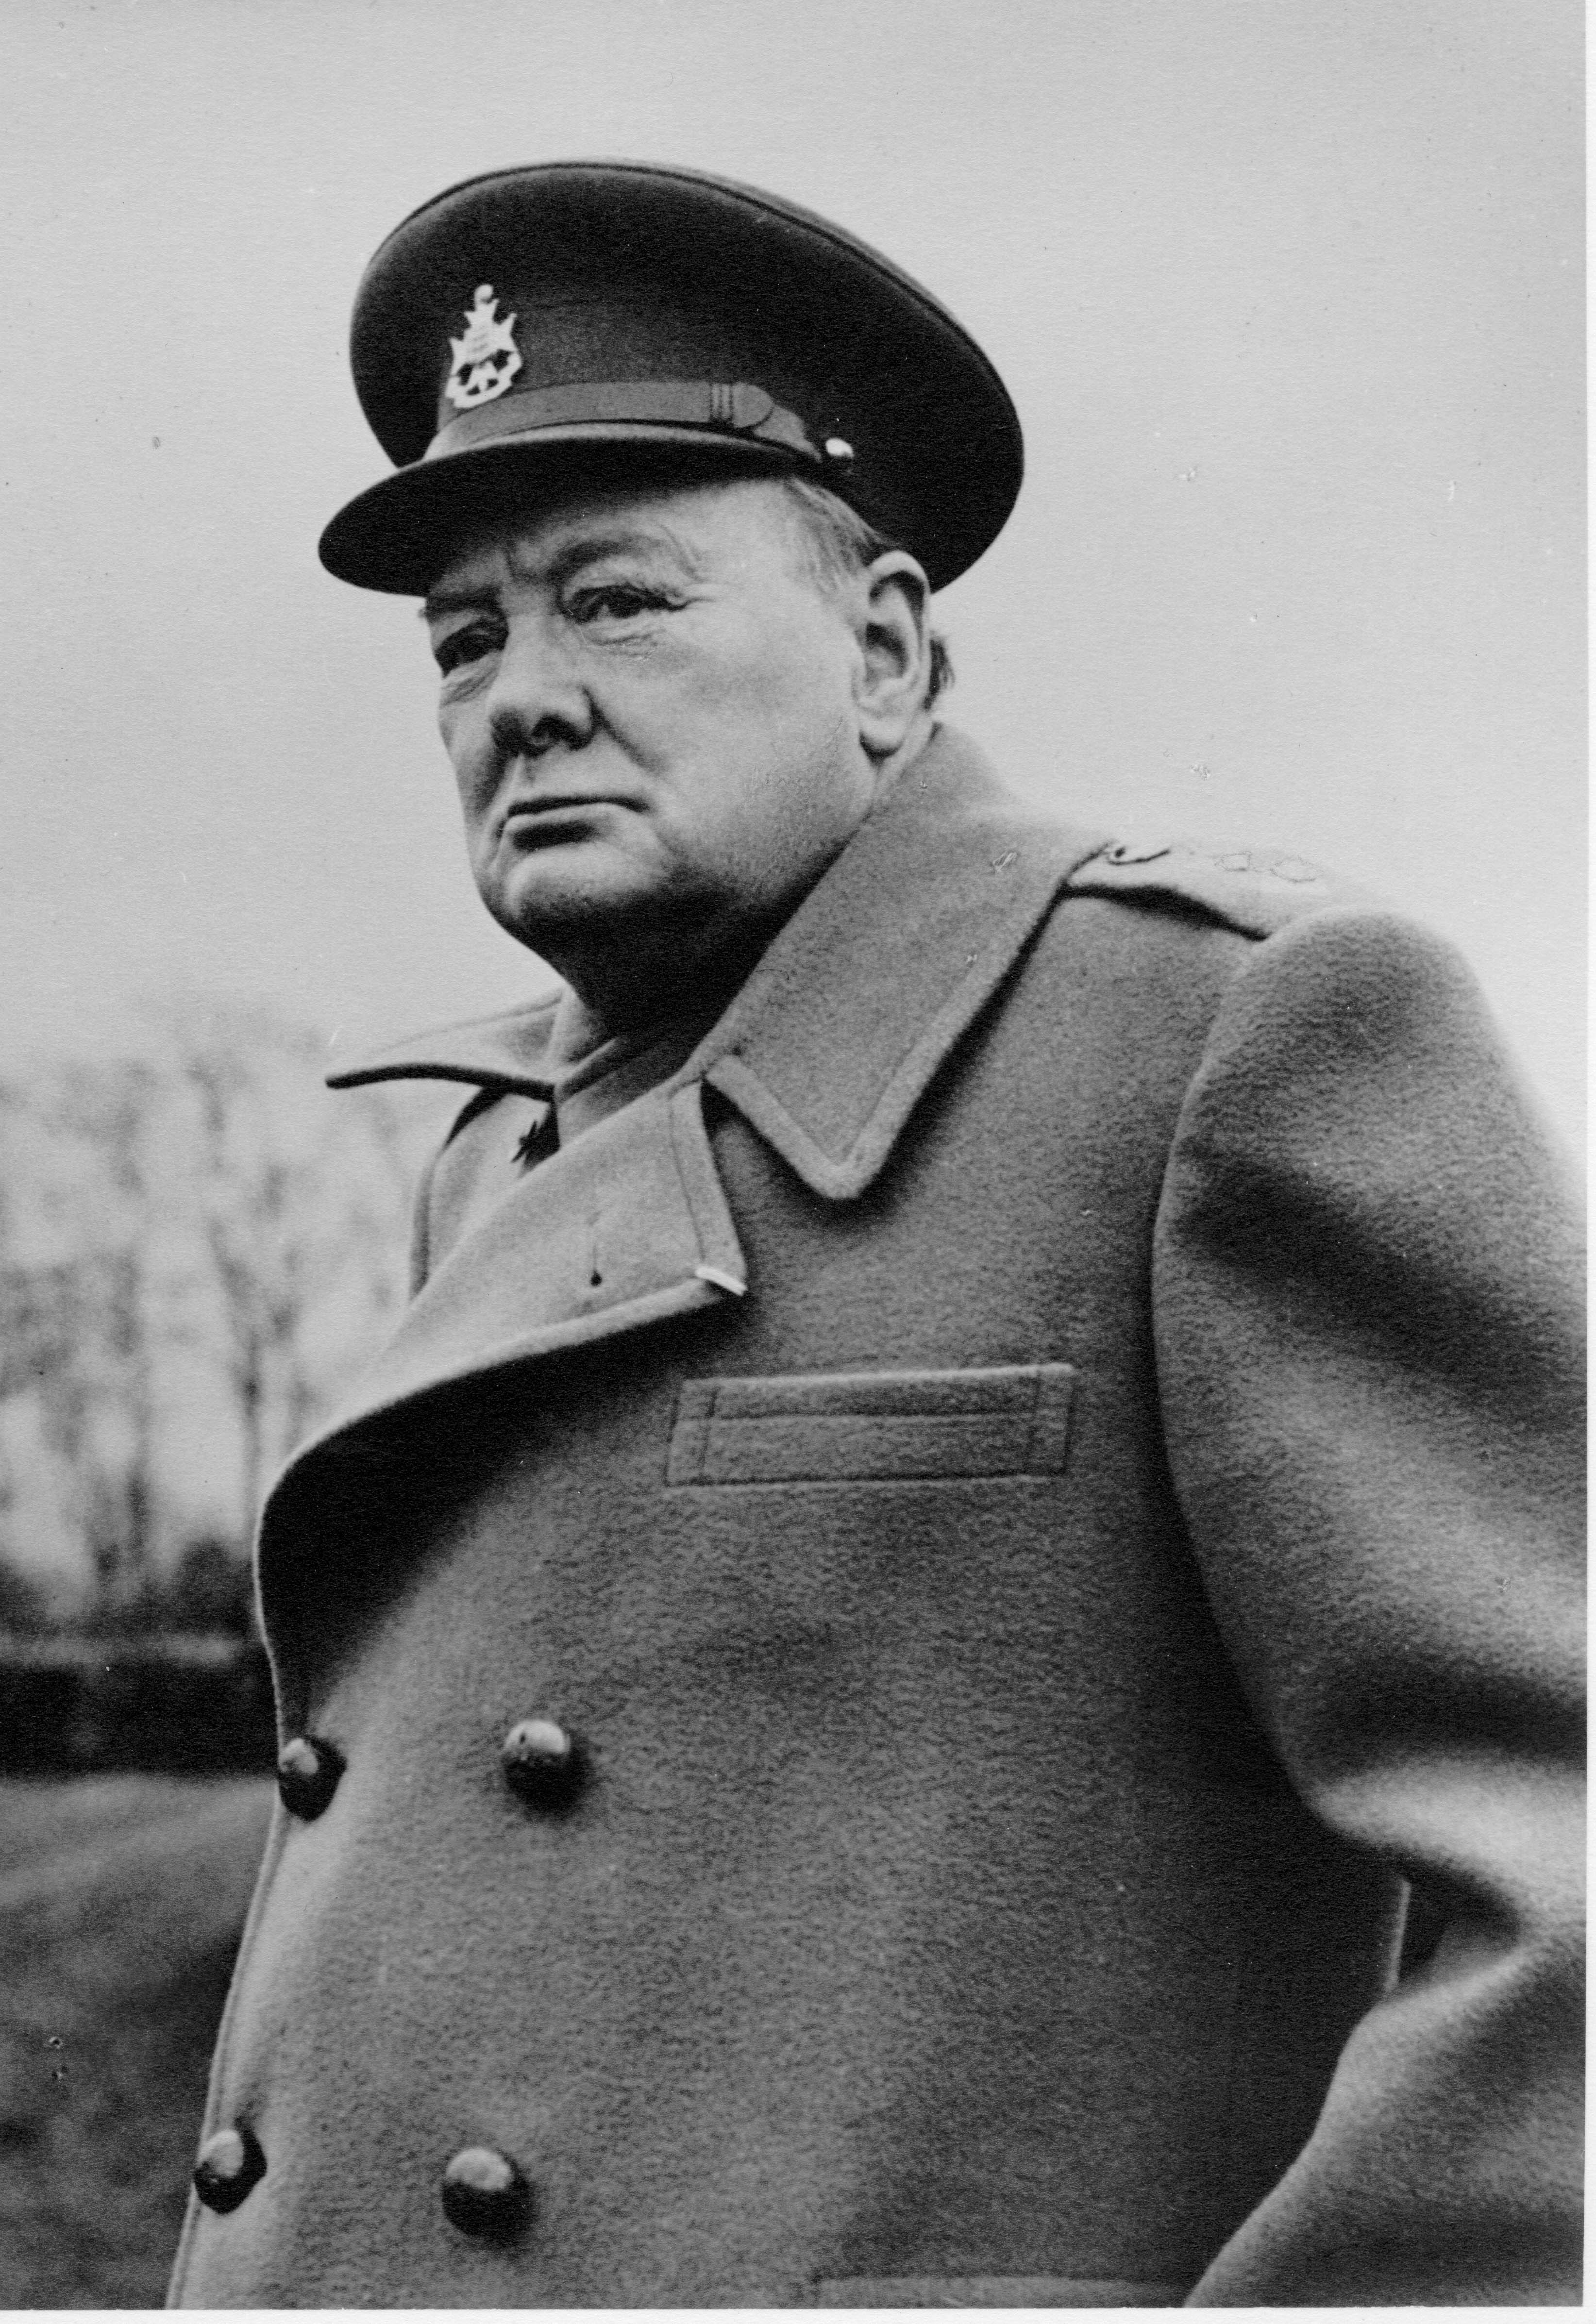 Churchill military image